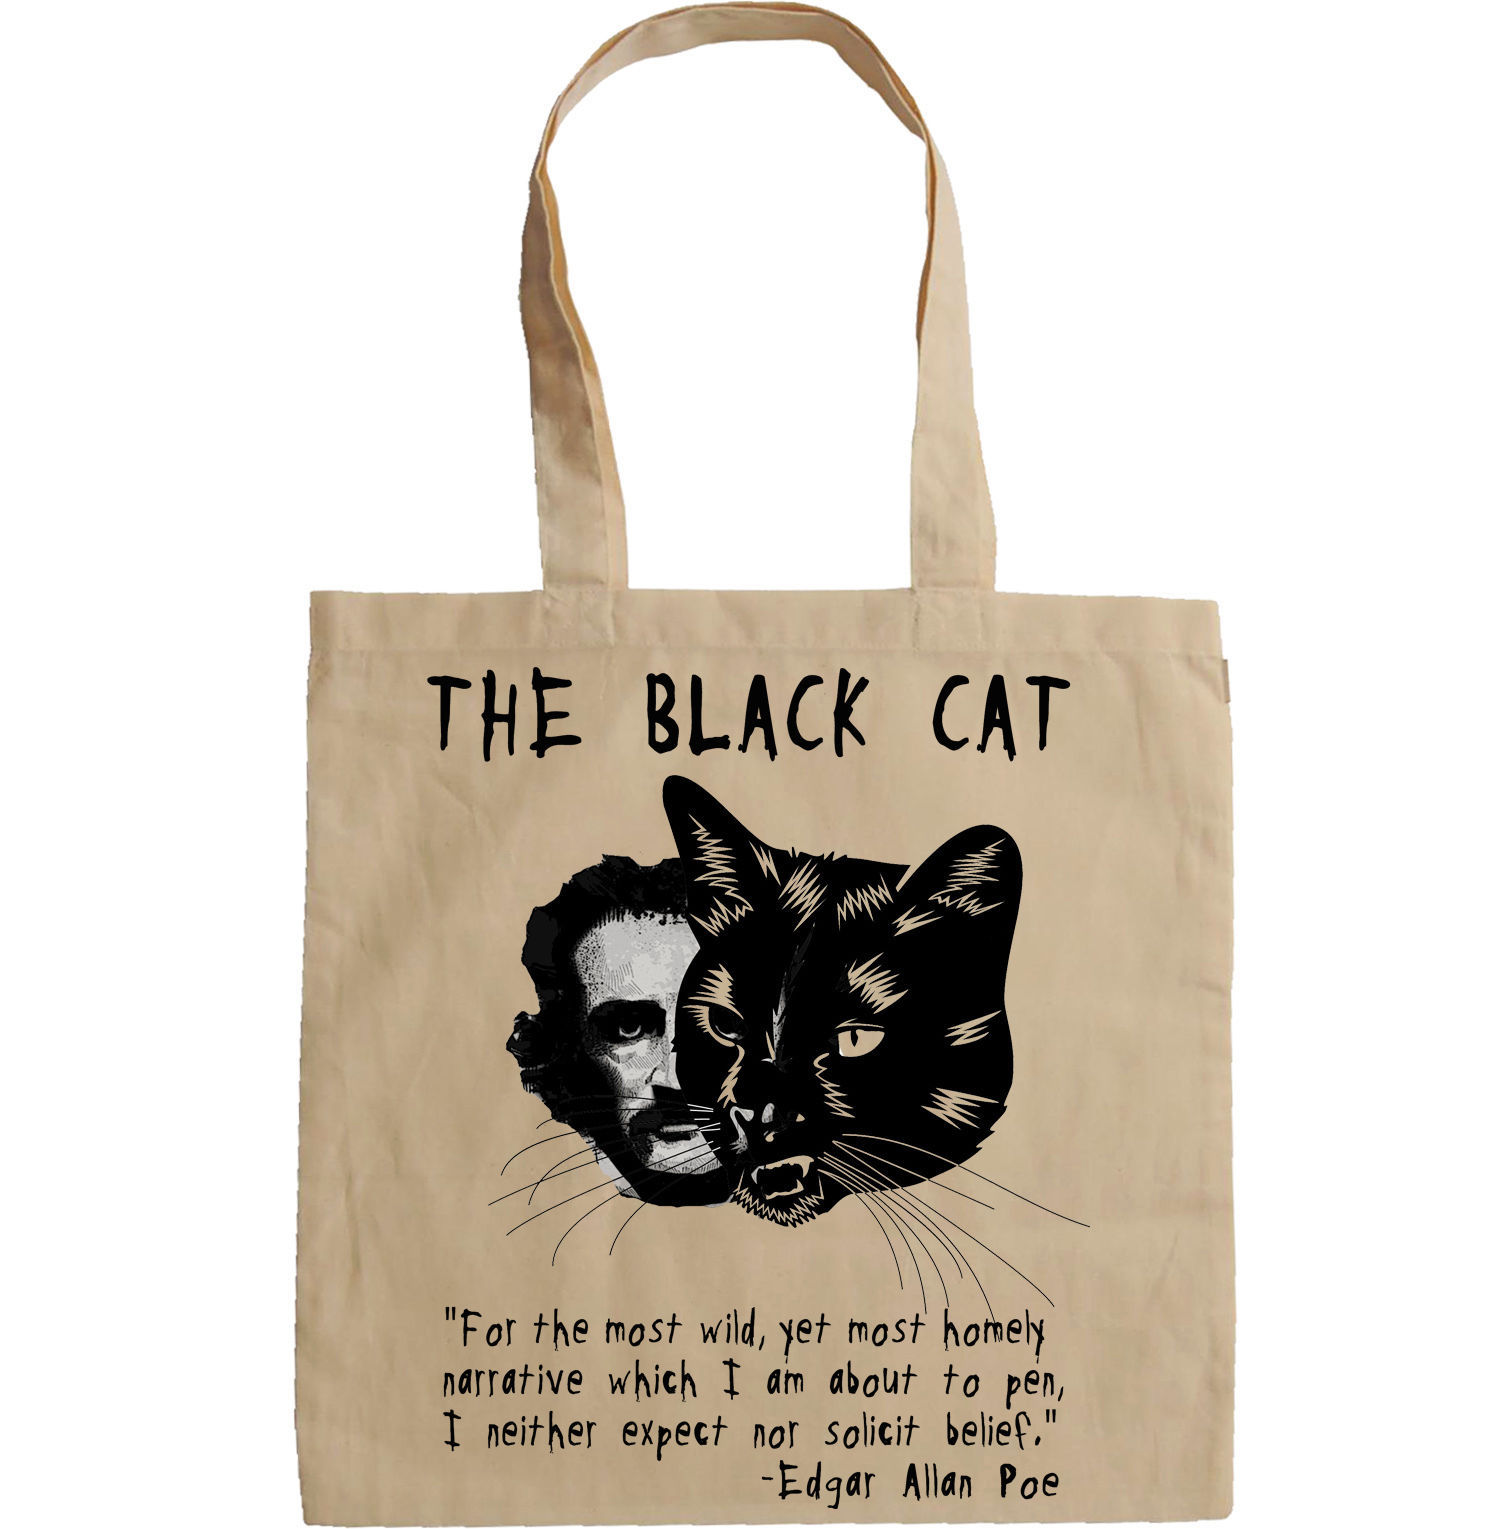 Primary image for EDGAR ALLAN POE THE BLACK CAT - NEW AMAZING GRAPHIC HAND BAG/TOTE BAG